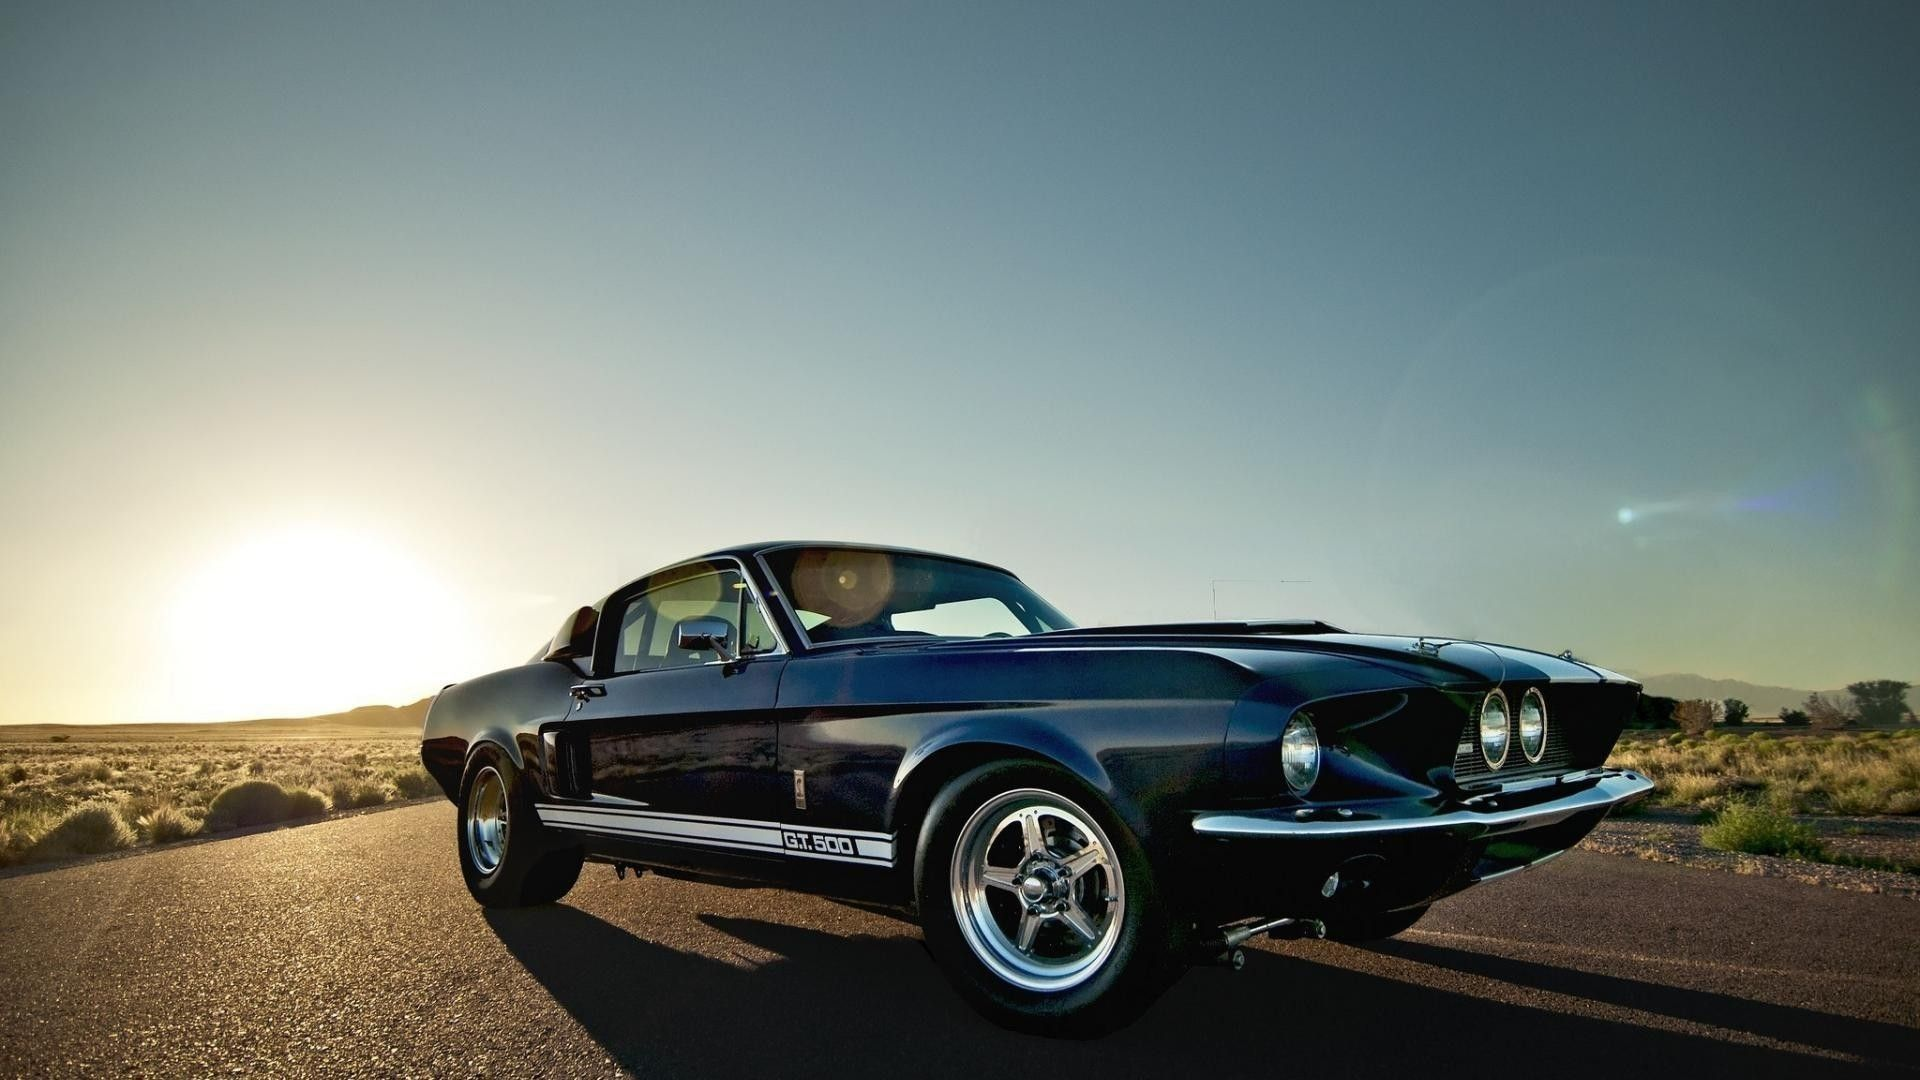 Res 1920x1080 1967 Ford Mustang Shelby Gt500 Mustang Shelby Mustang Vintage Cars Wallpaper Ford Mustangs